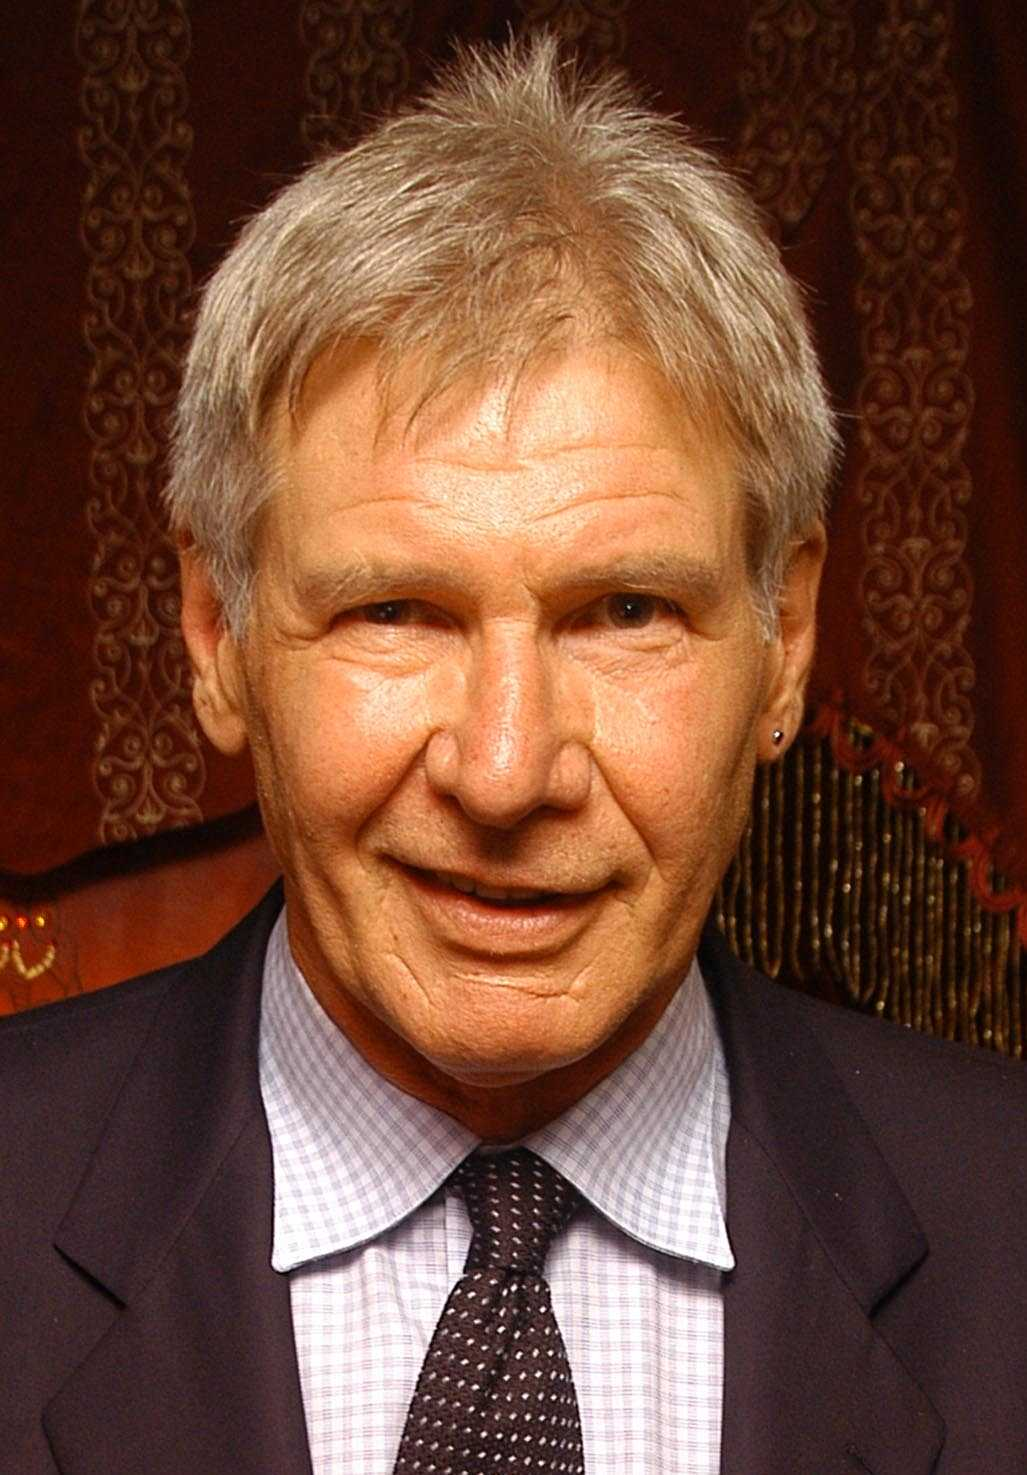 Harrison Ford Surprises Fans Via Webcam For Charity! | Harrison Ford